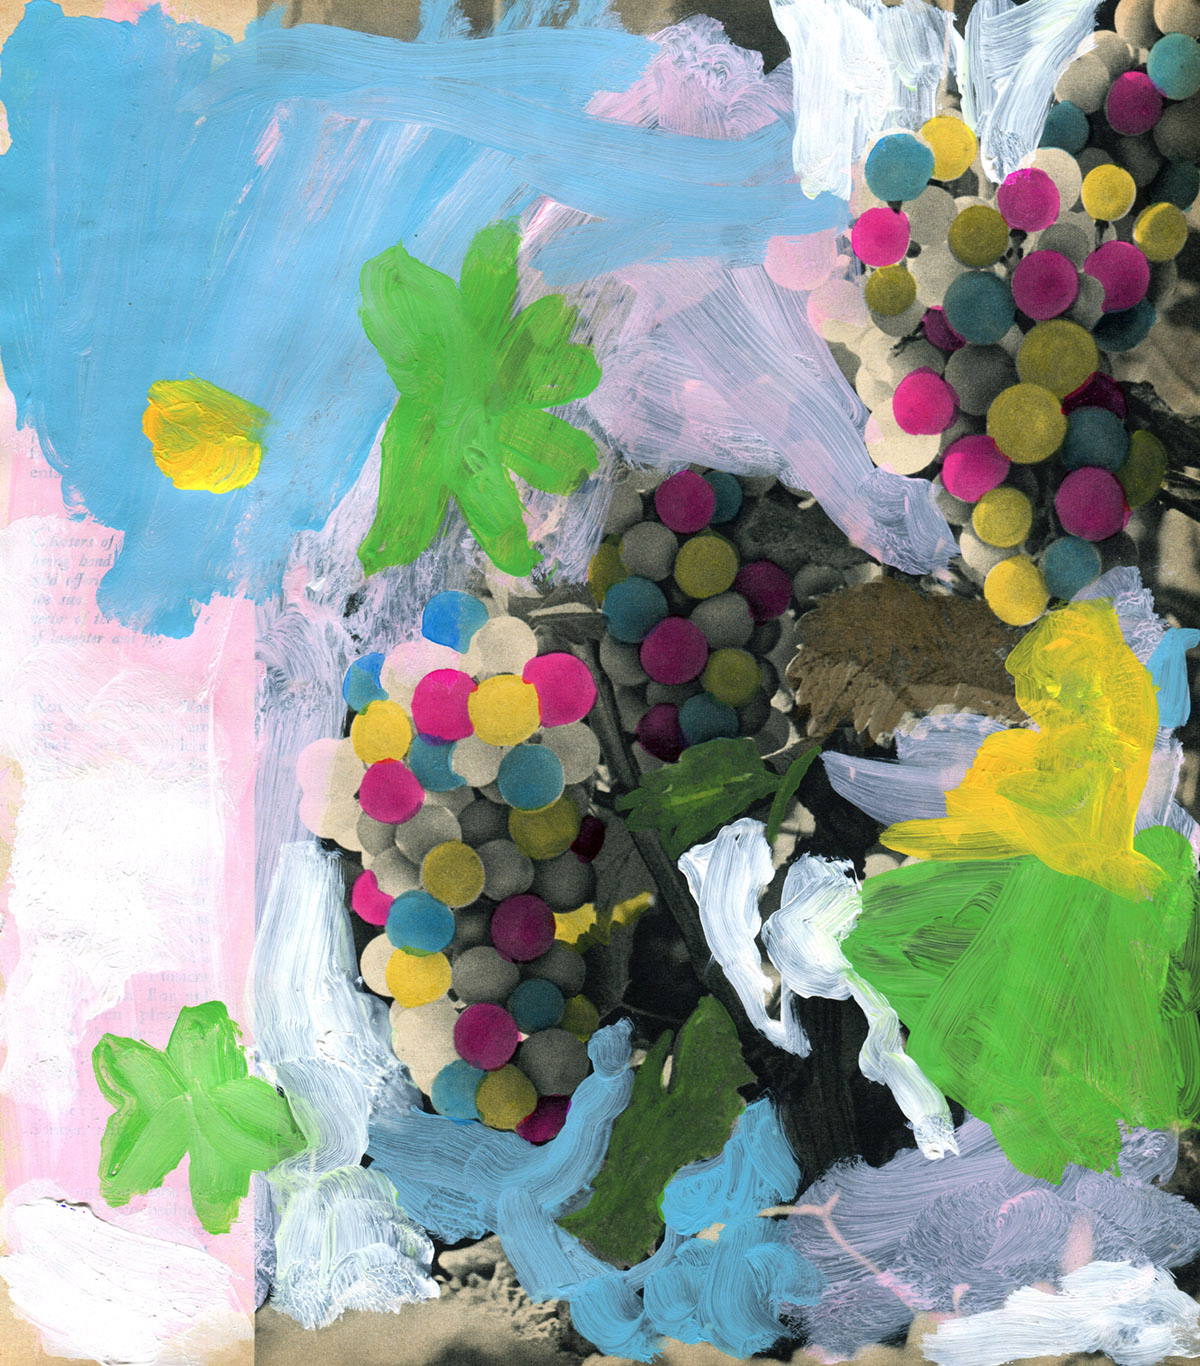 Minna Gilligan, Grapes of Wrath, 2015. Courtesy the artist and Daine Singer Gallery